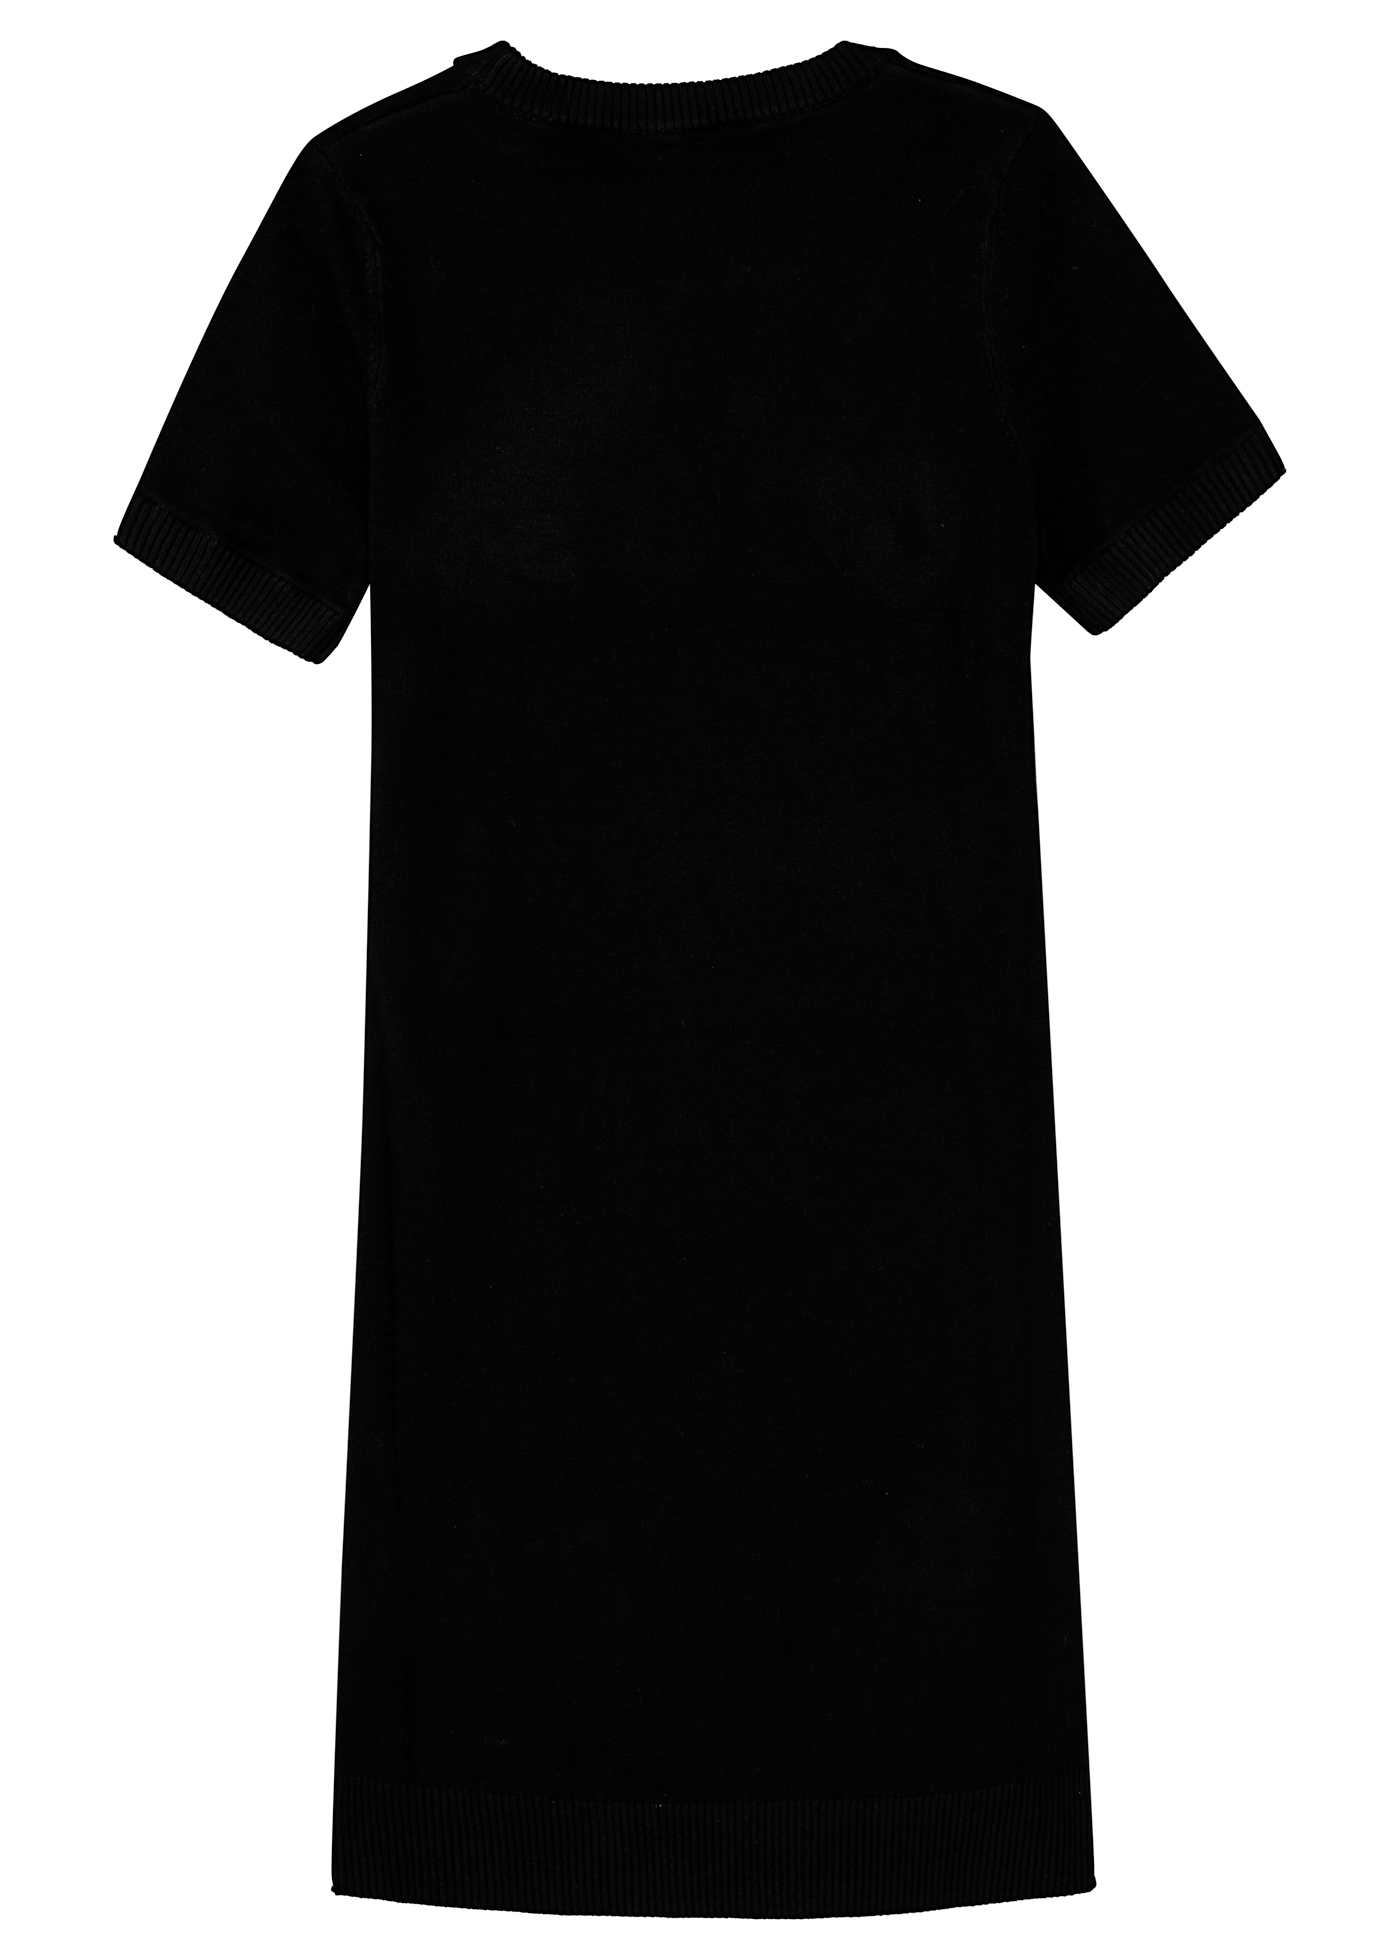 SS Tee Dress image number 1